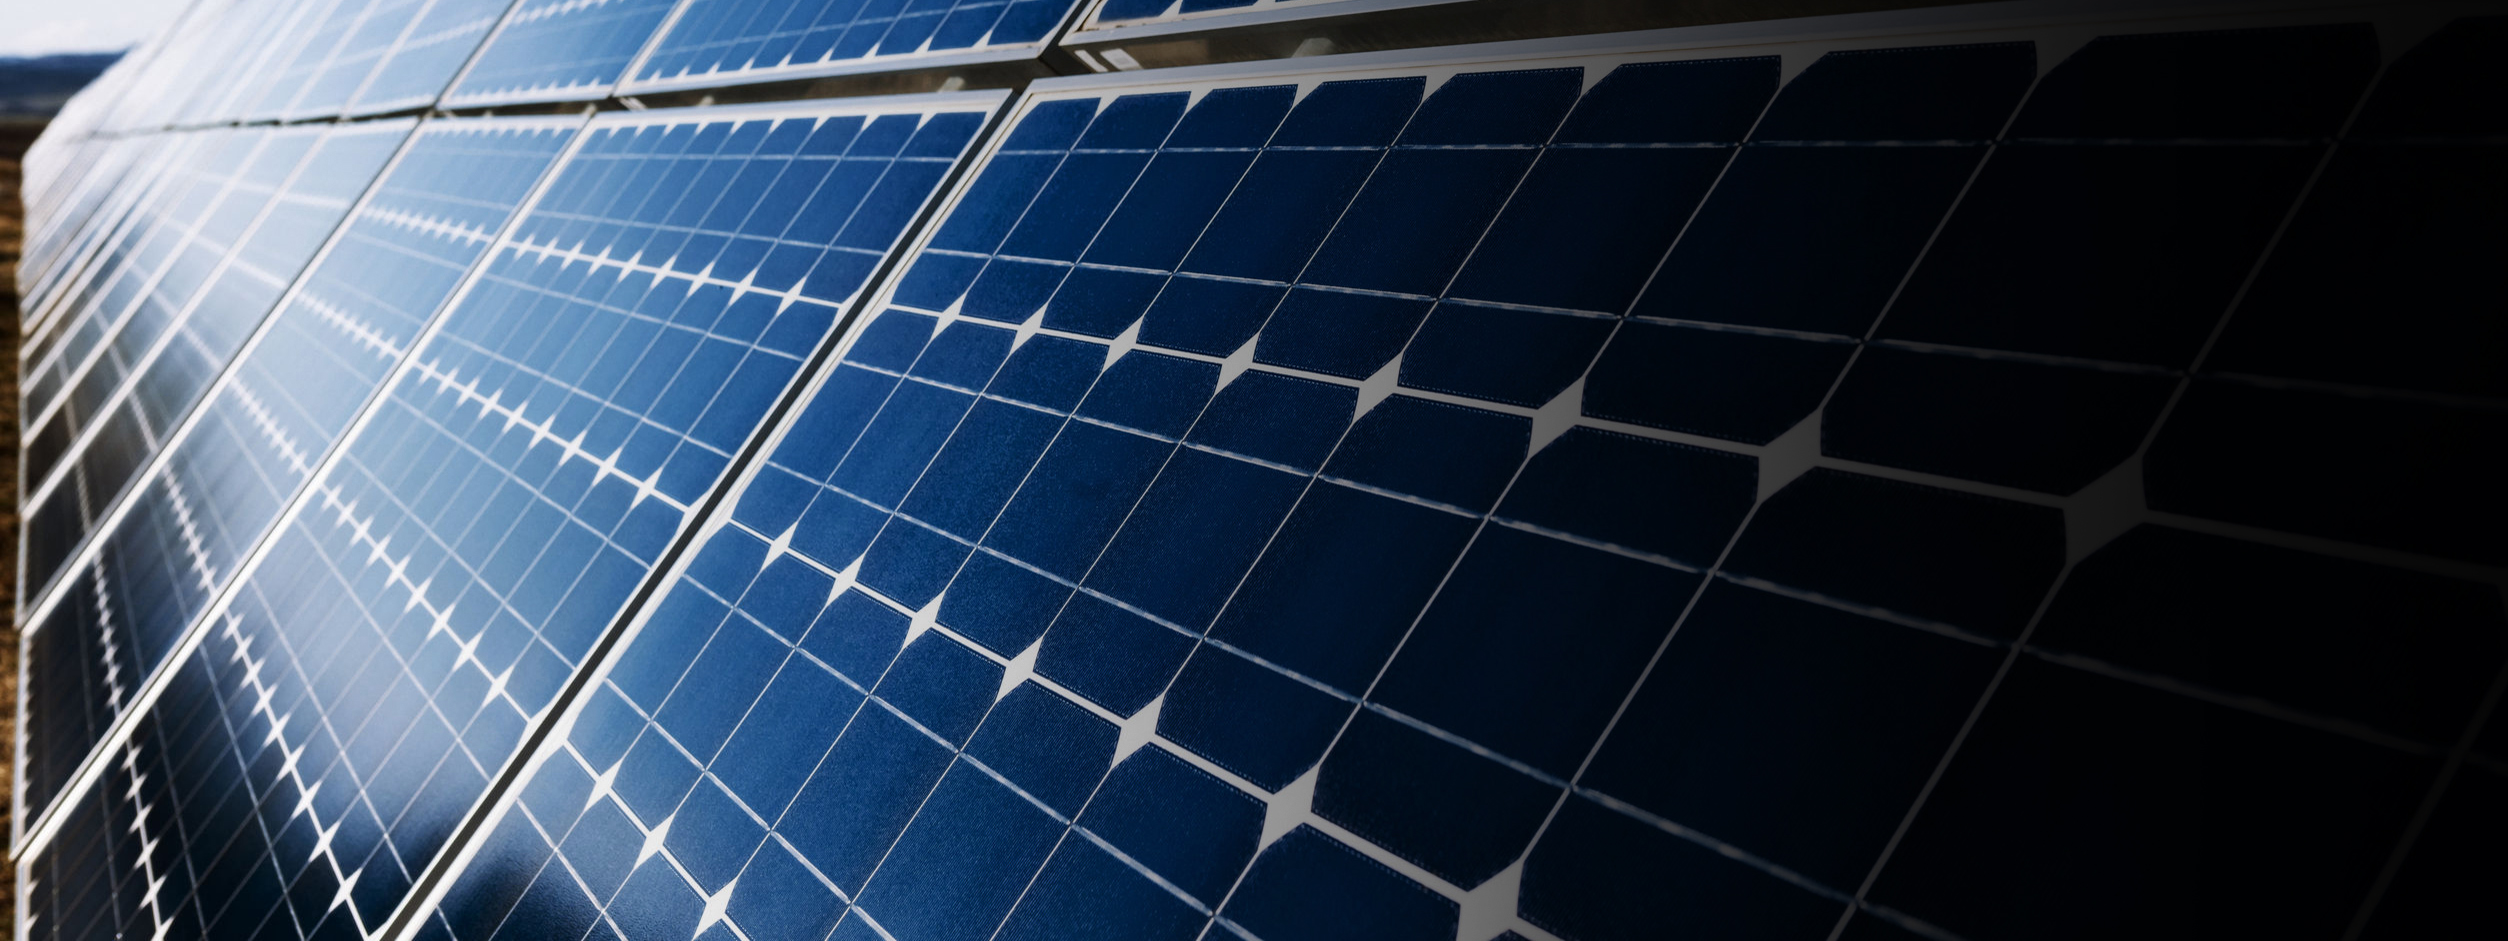 36162036 – blue solar panels with sunlight reflection